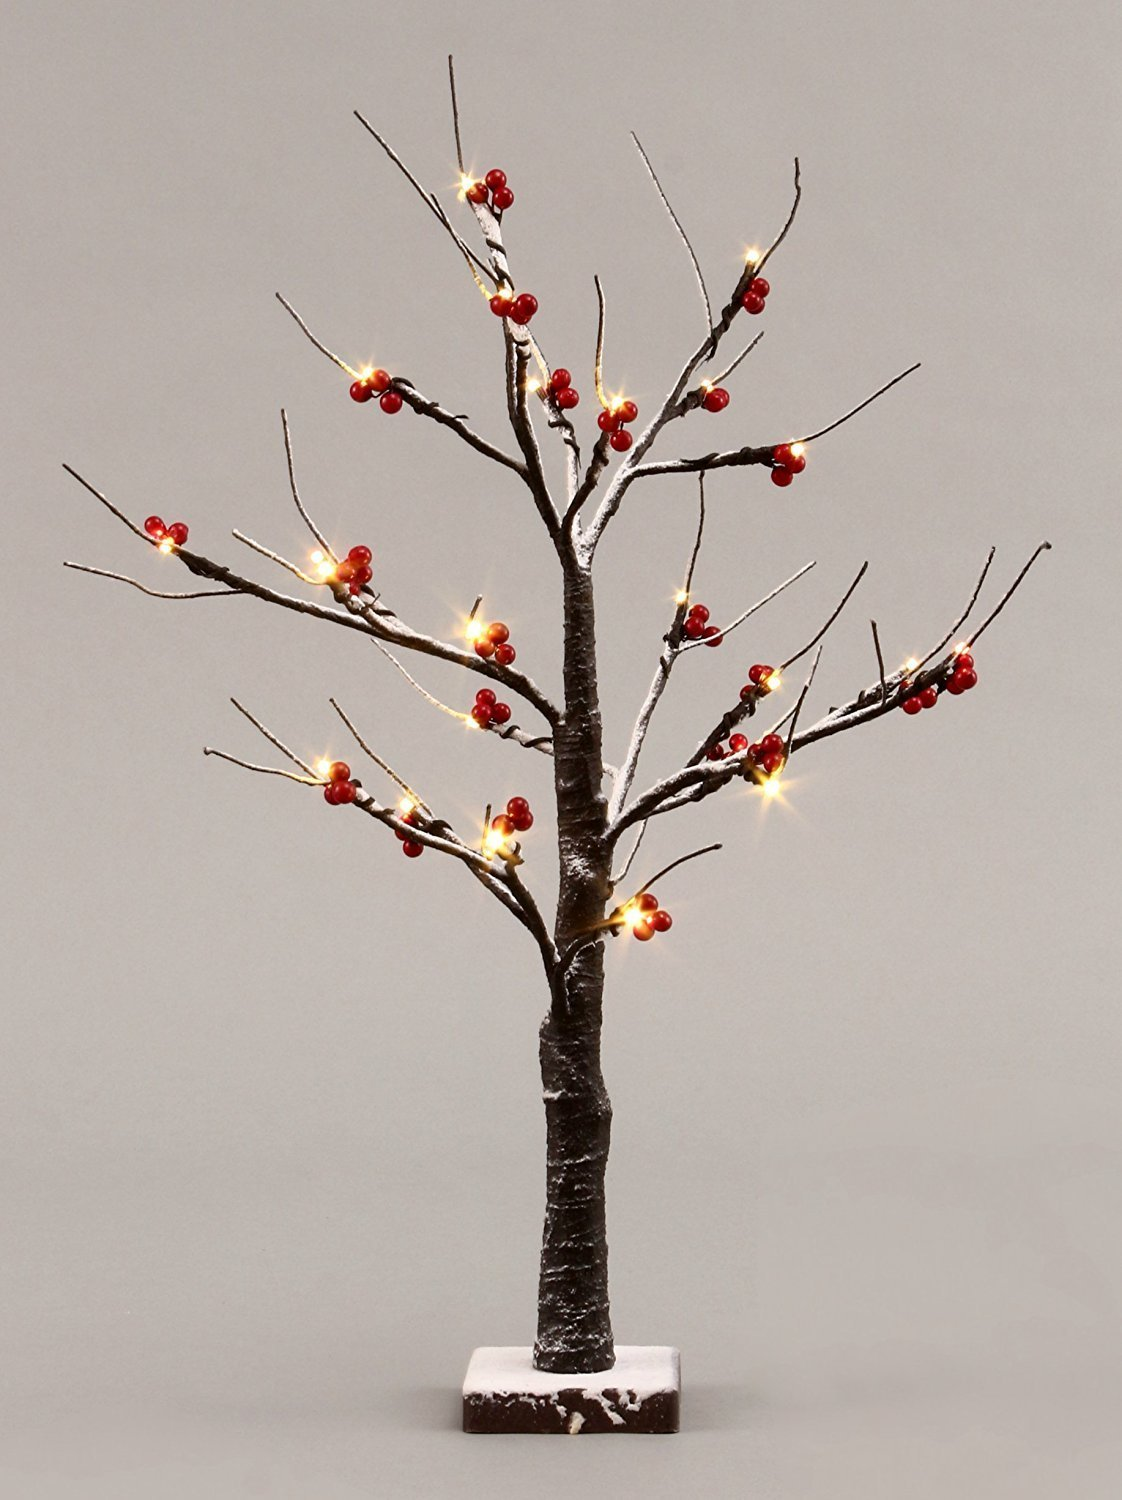 Fashionlite 24 Inch Red Fruits Snow Tree Bonsai LED Light Decorative Baby Night Light Lamp Design for Home/Party/Wedding/Christmas Use Warm White Jewelry Tree SNRT001